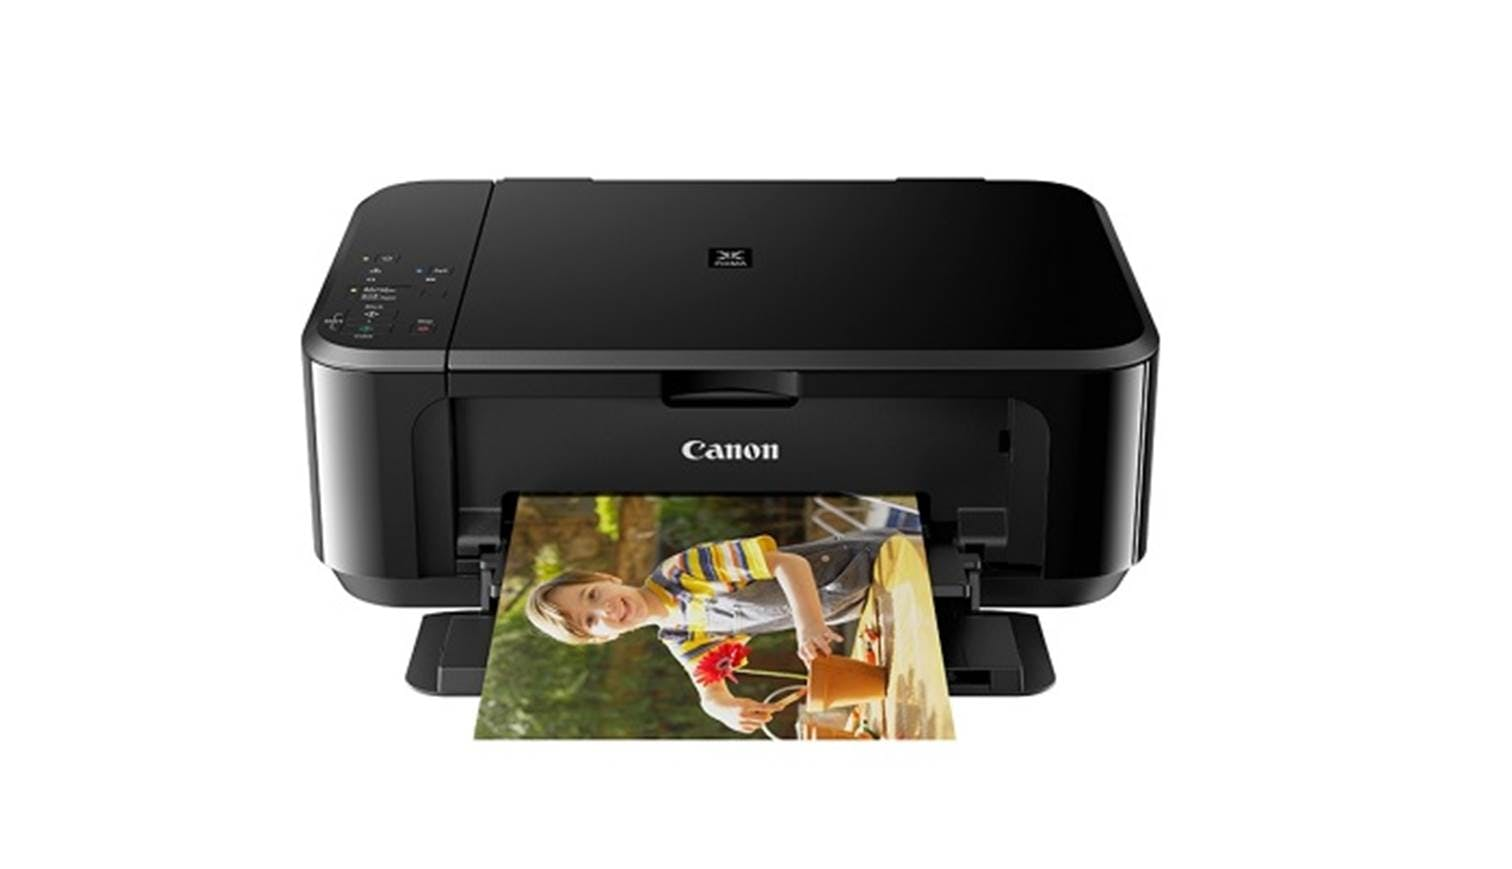 Canon PIXMA MG-3670 All-in-One Printer - Black b55f3e1743